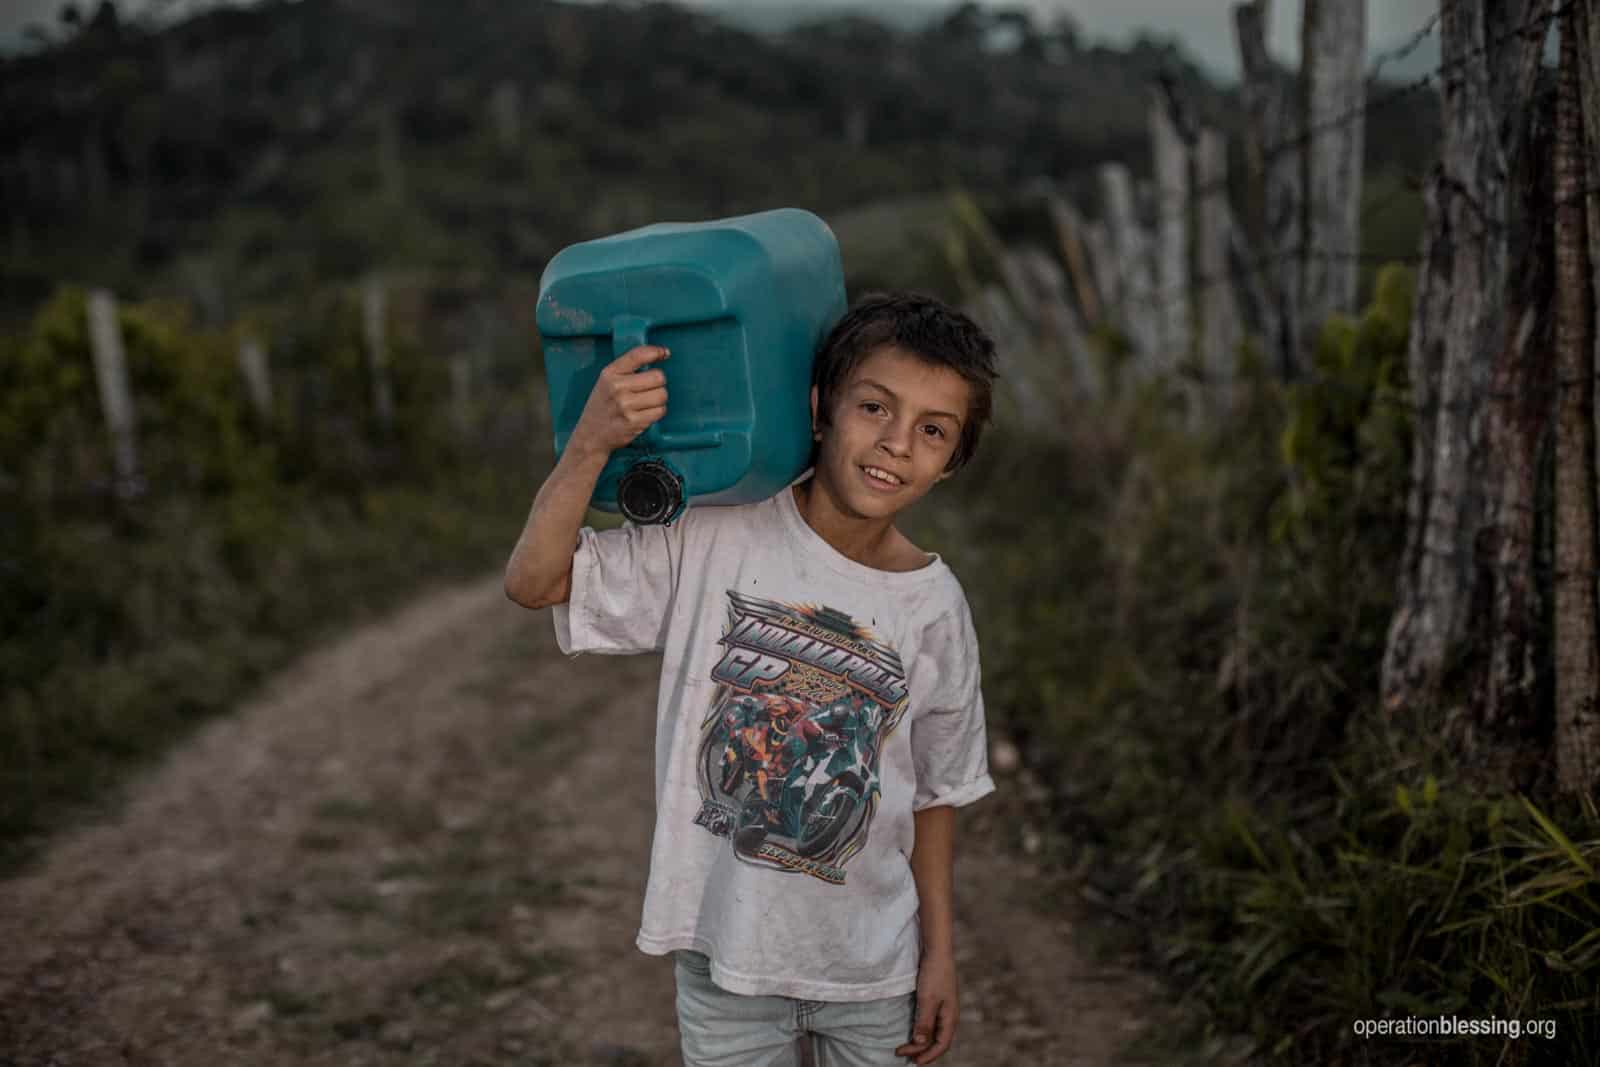 Omar carries a container of water.